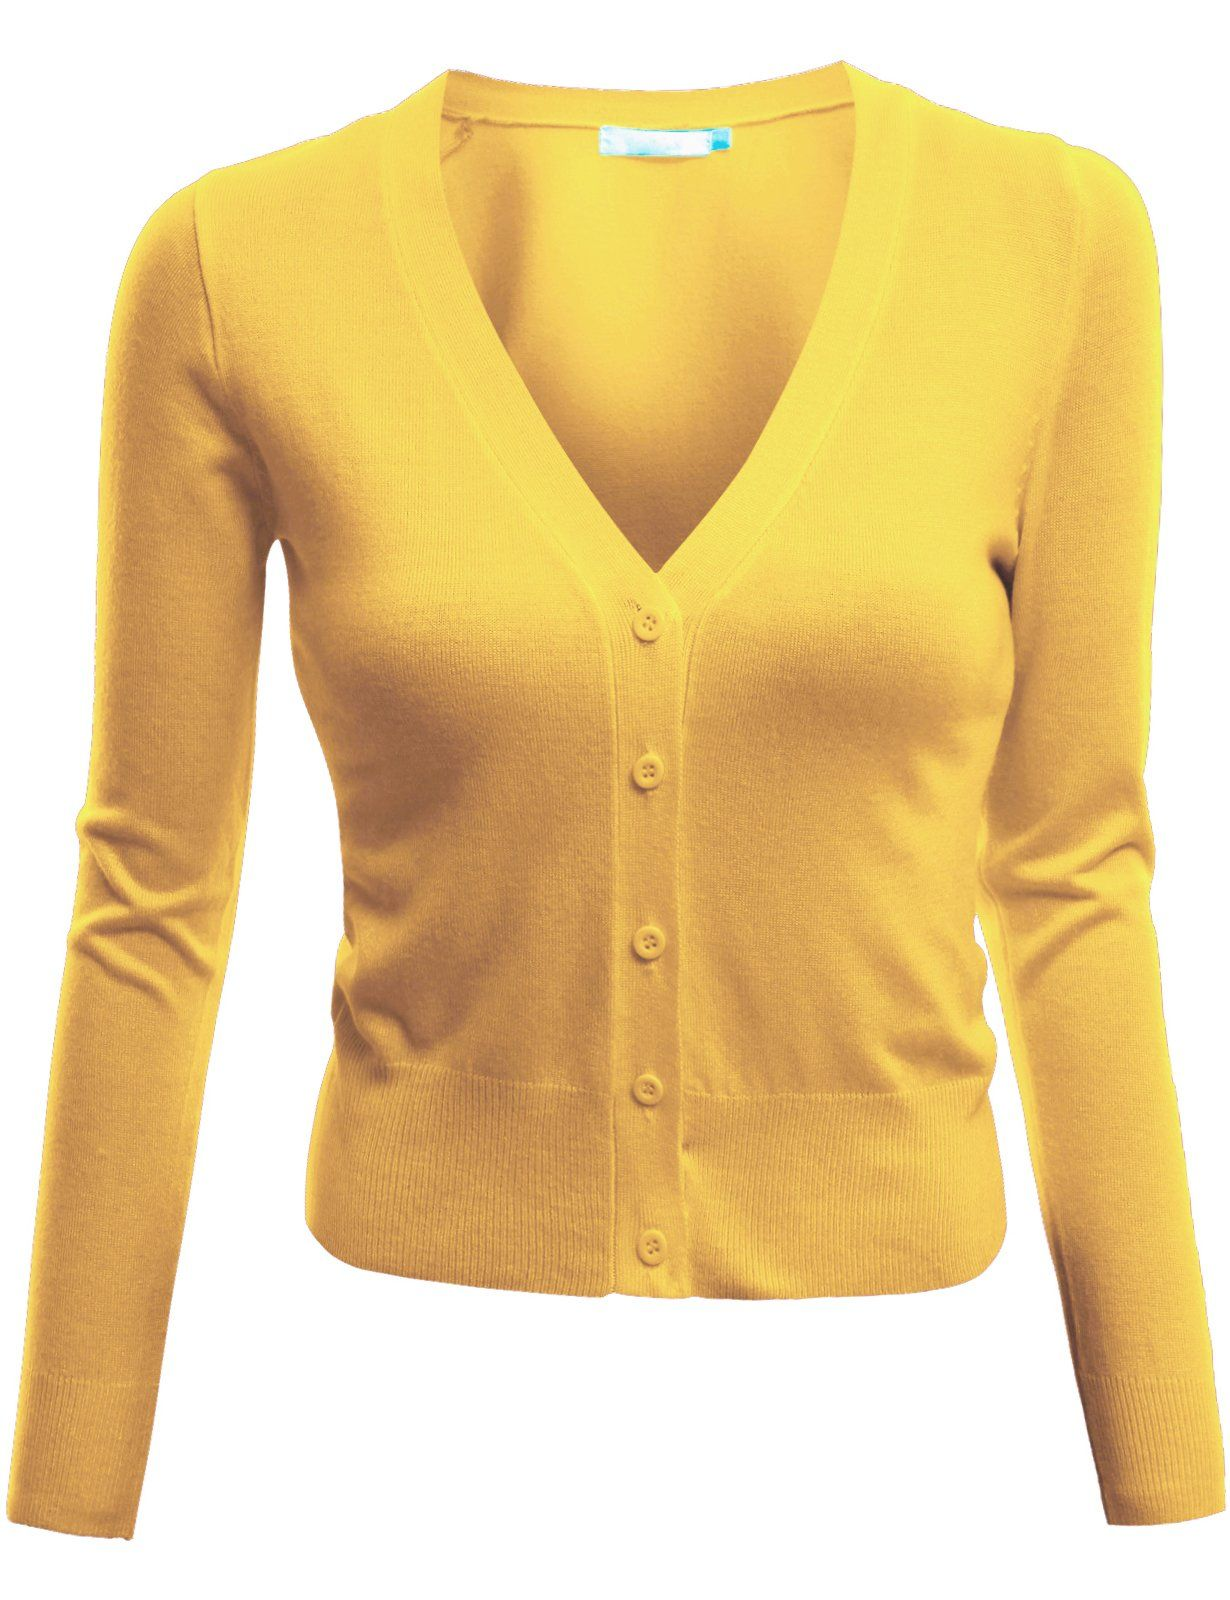 Doublju Short Length Knit Shrug Cardigan YELLOW (US-XS) | 50's ...